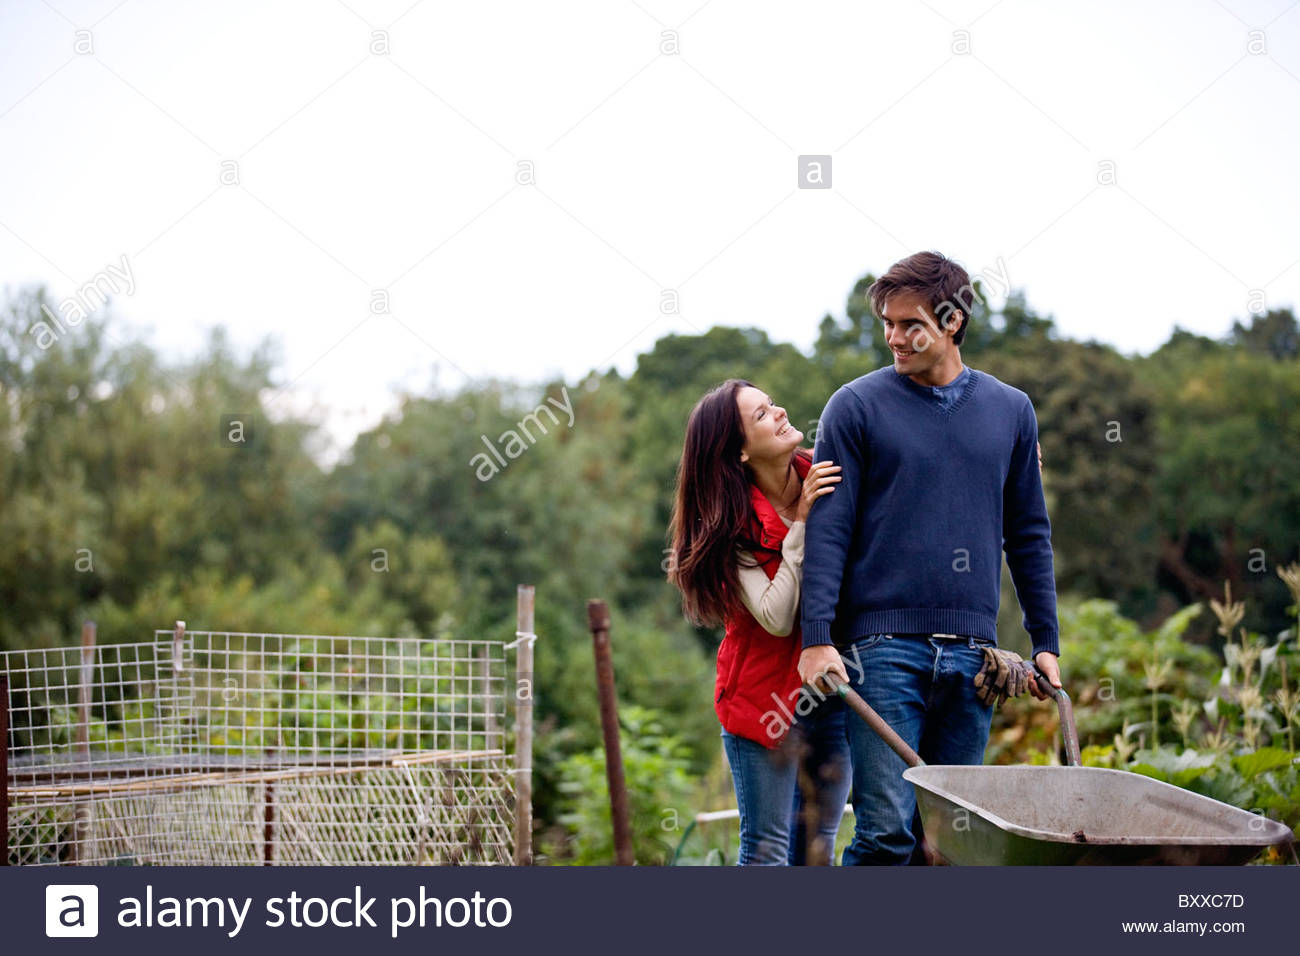 A young couple pushing a wheelbarrow on an allotment - Stock Image